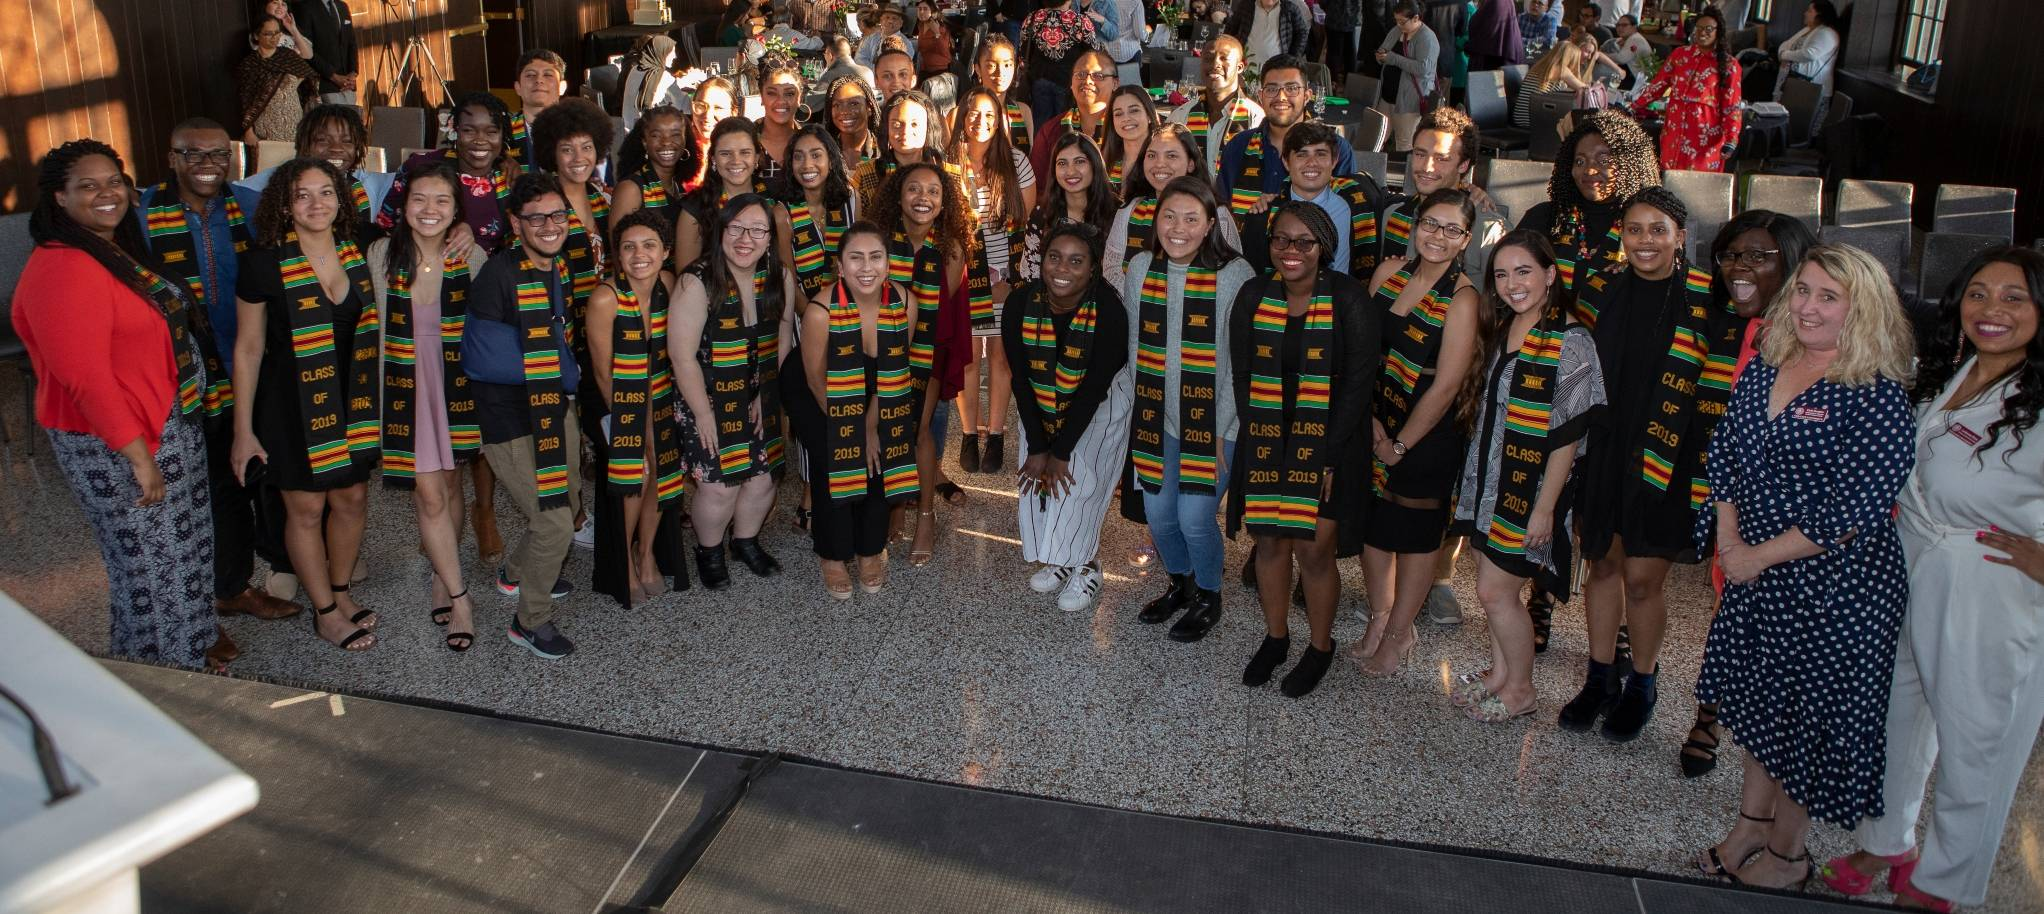 2019 senior class gathers with kente cloth stoles adorned